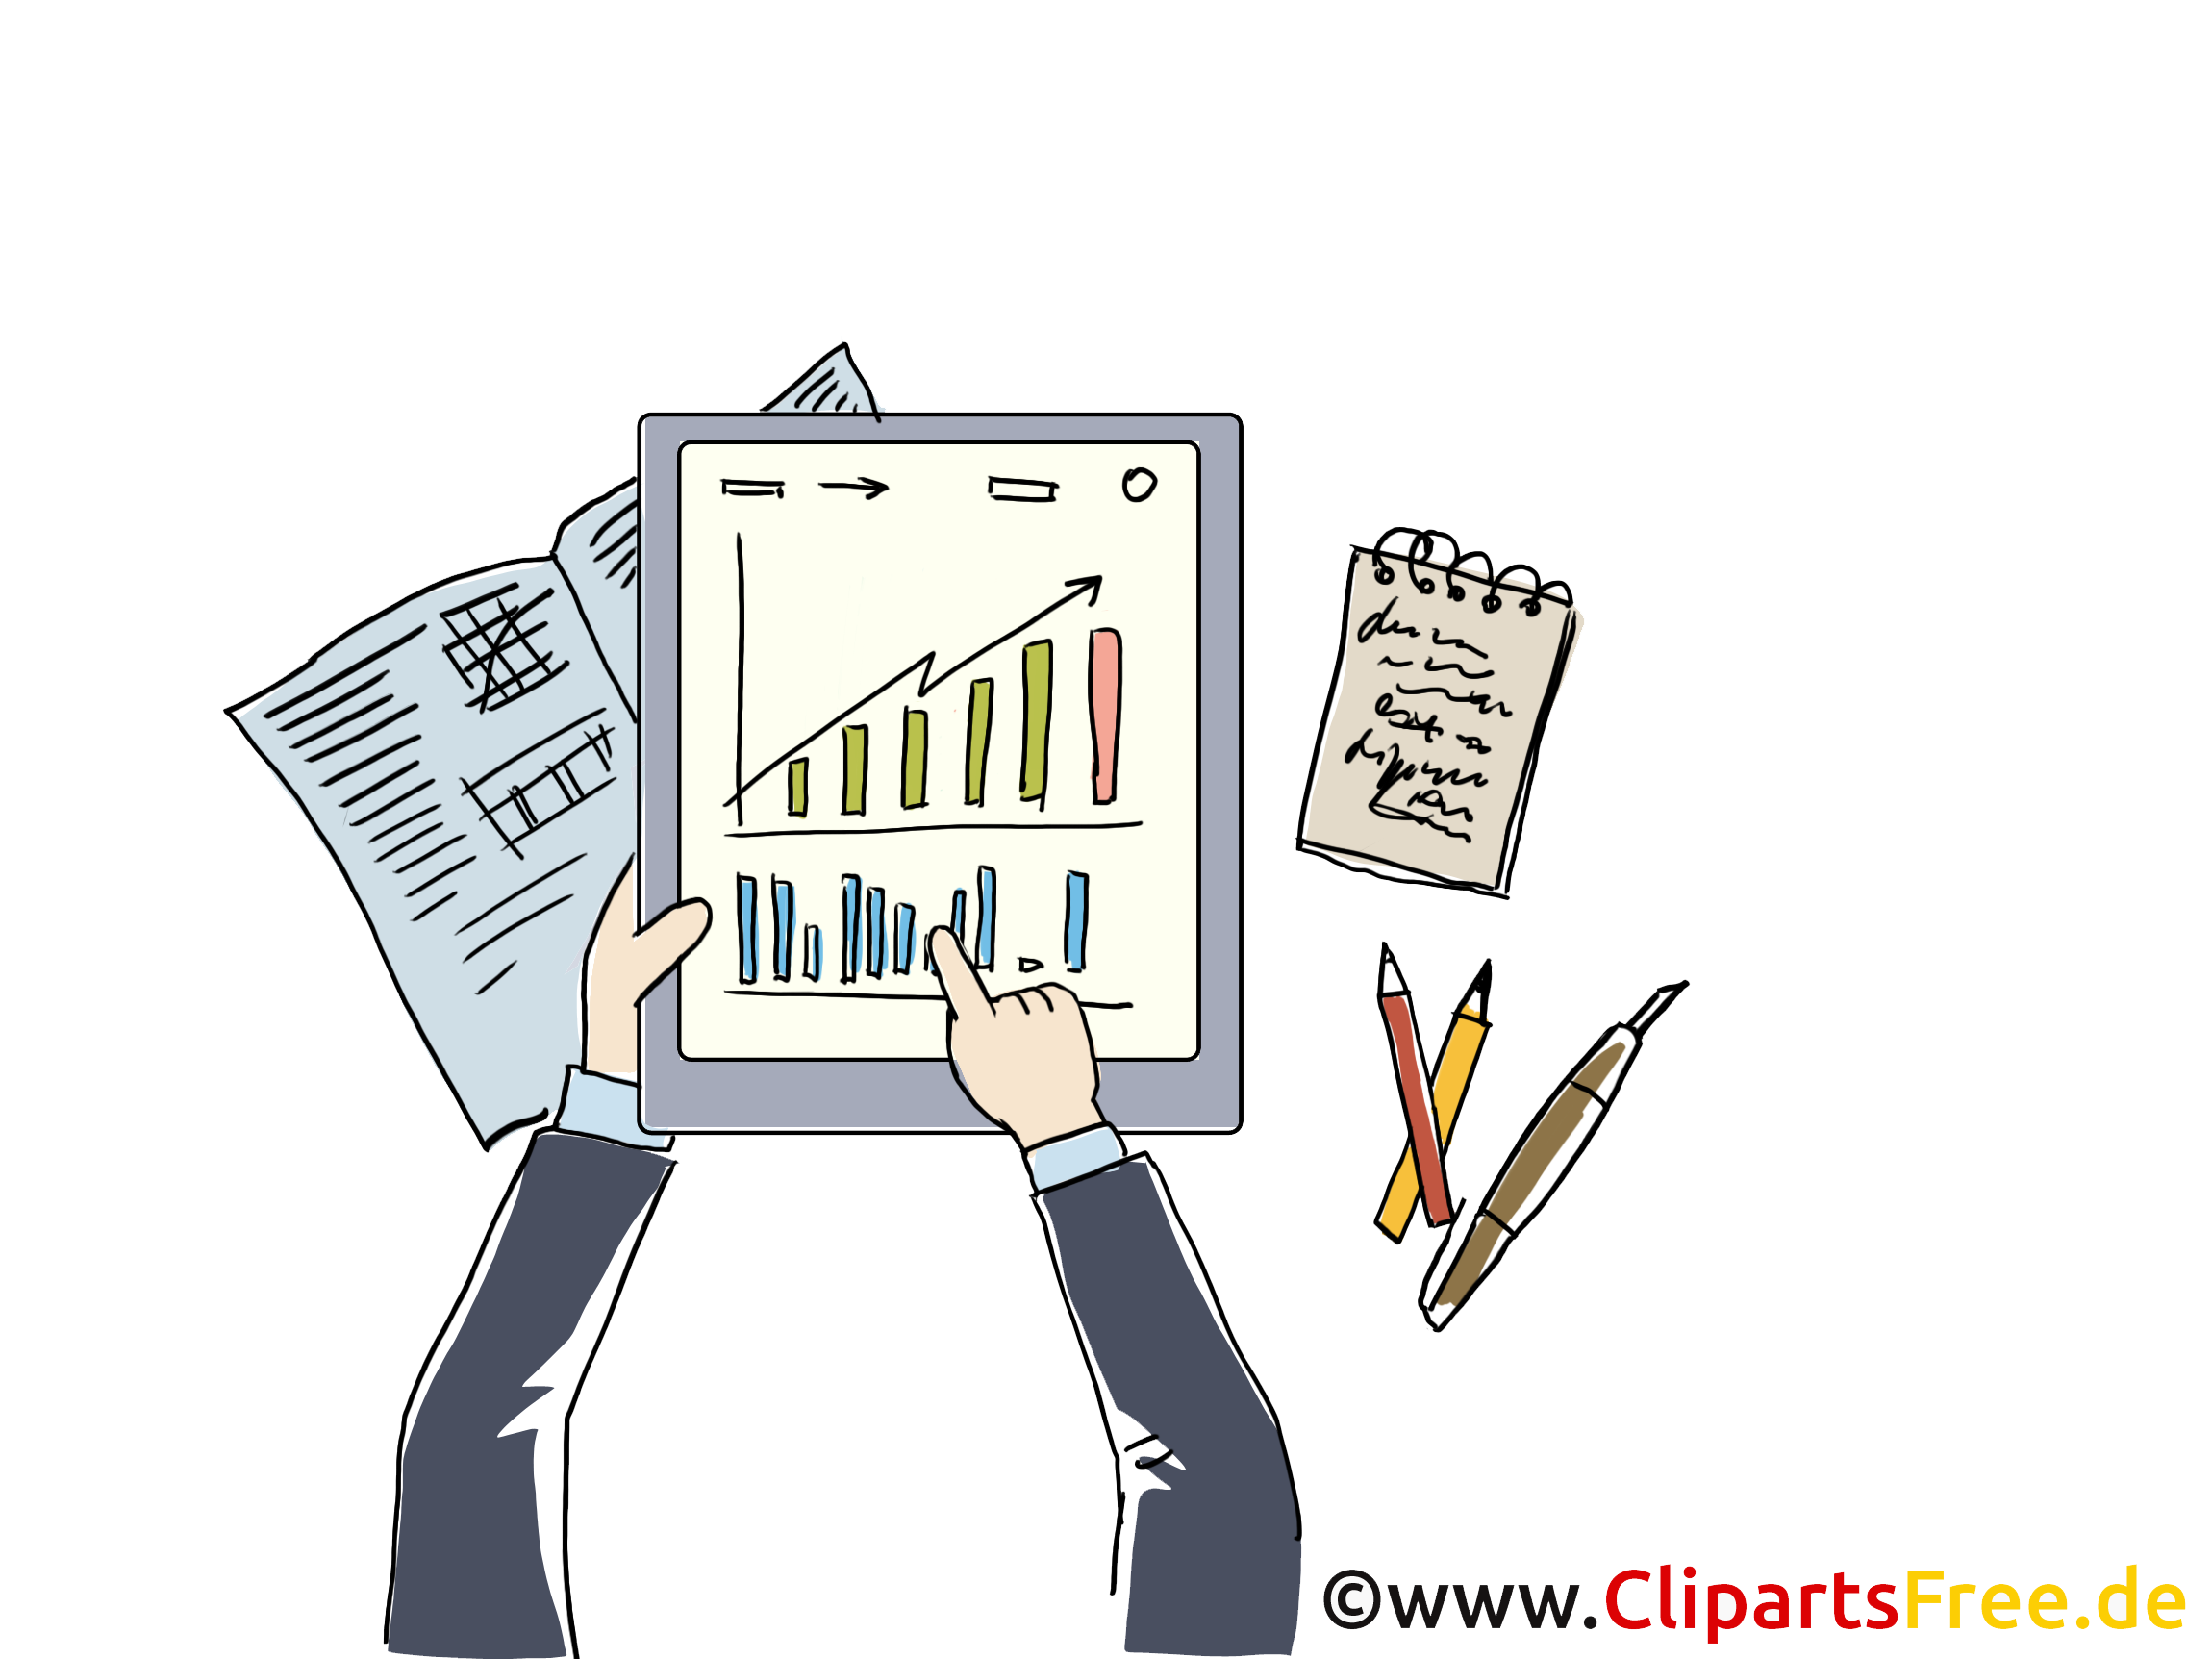 Bildtitel  Job Clipart Grafik Bild Cartoon